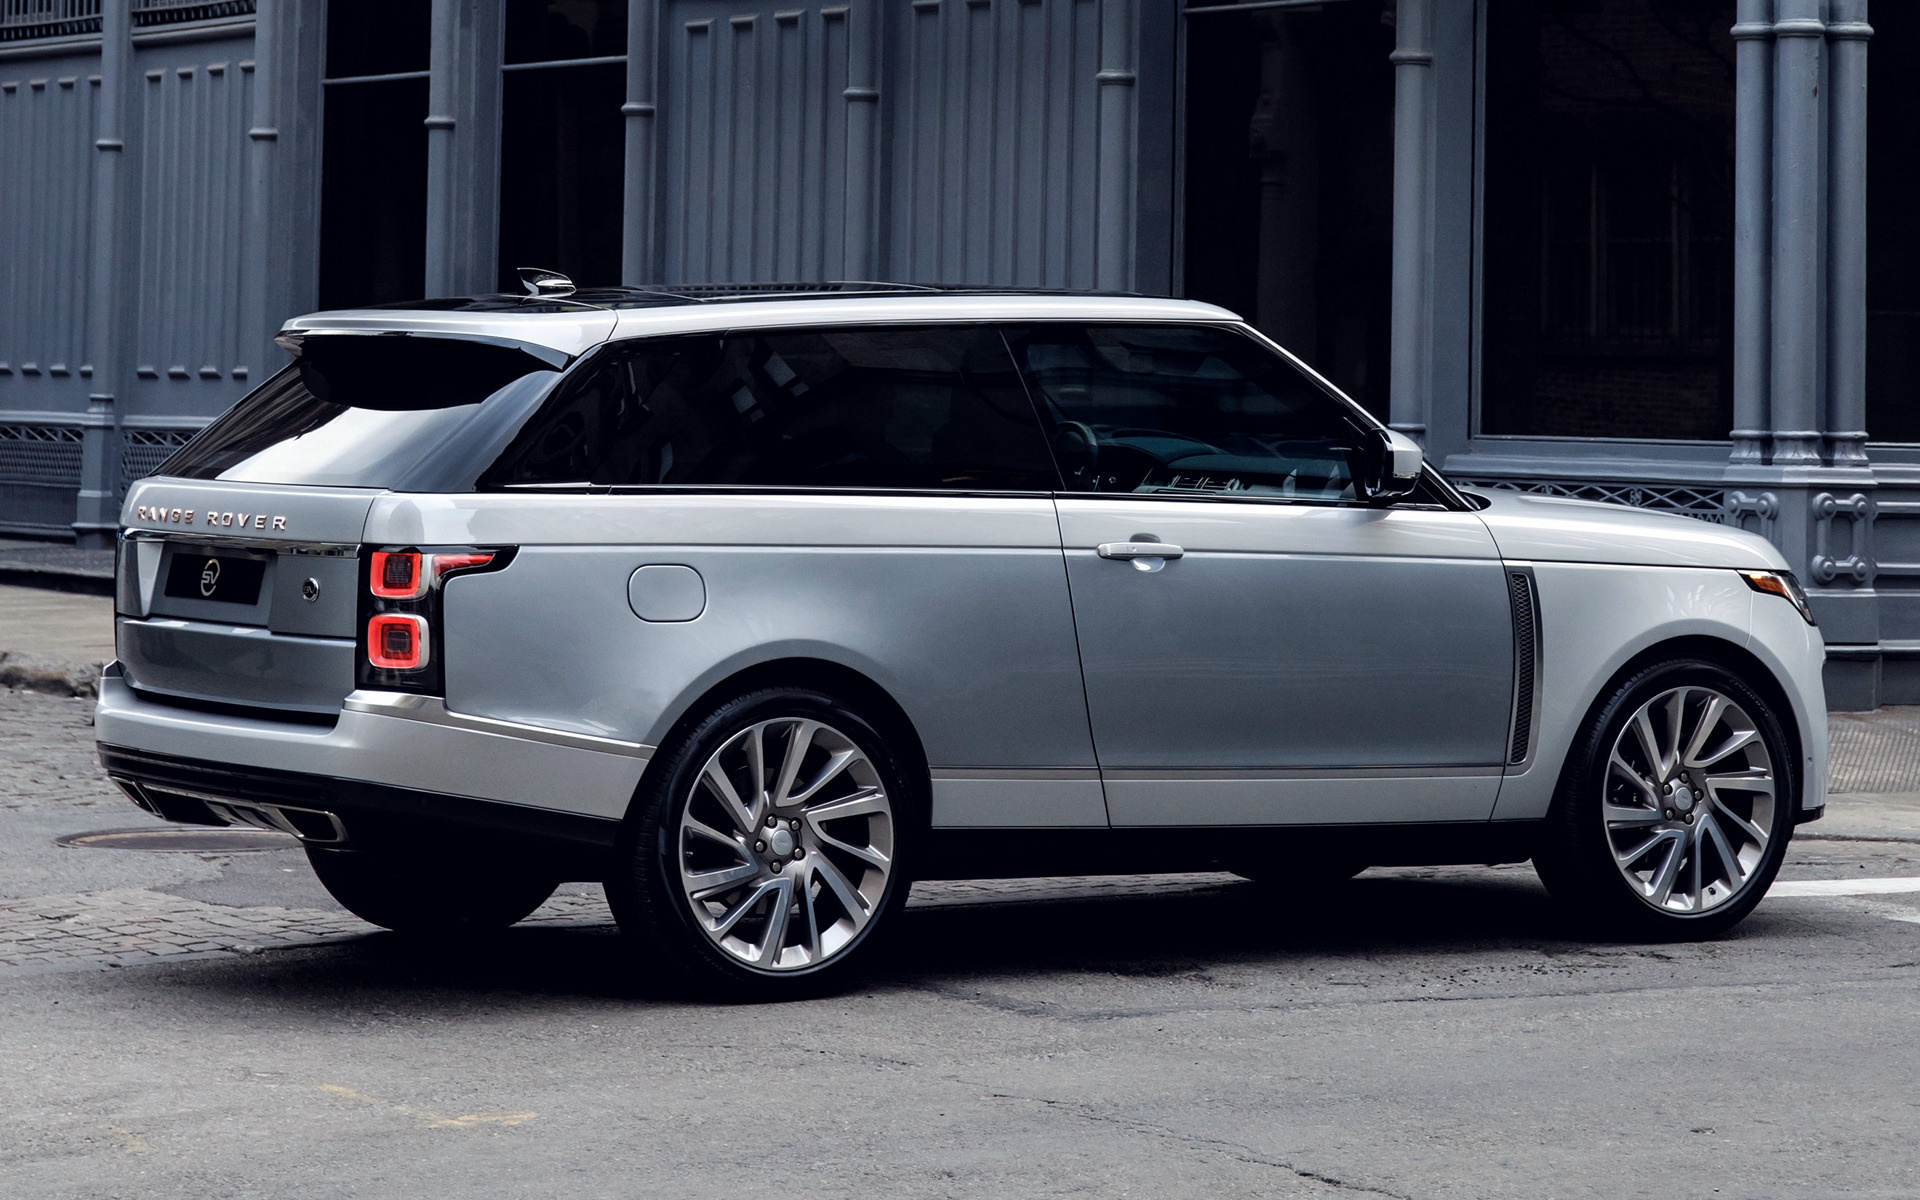 Acura Car Wallpaper 2019 Range Rover Sv Coupe Us Wallpapers And Hd Images